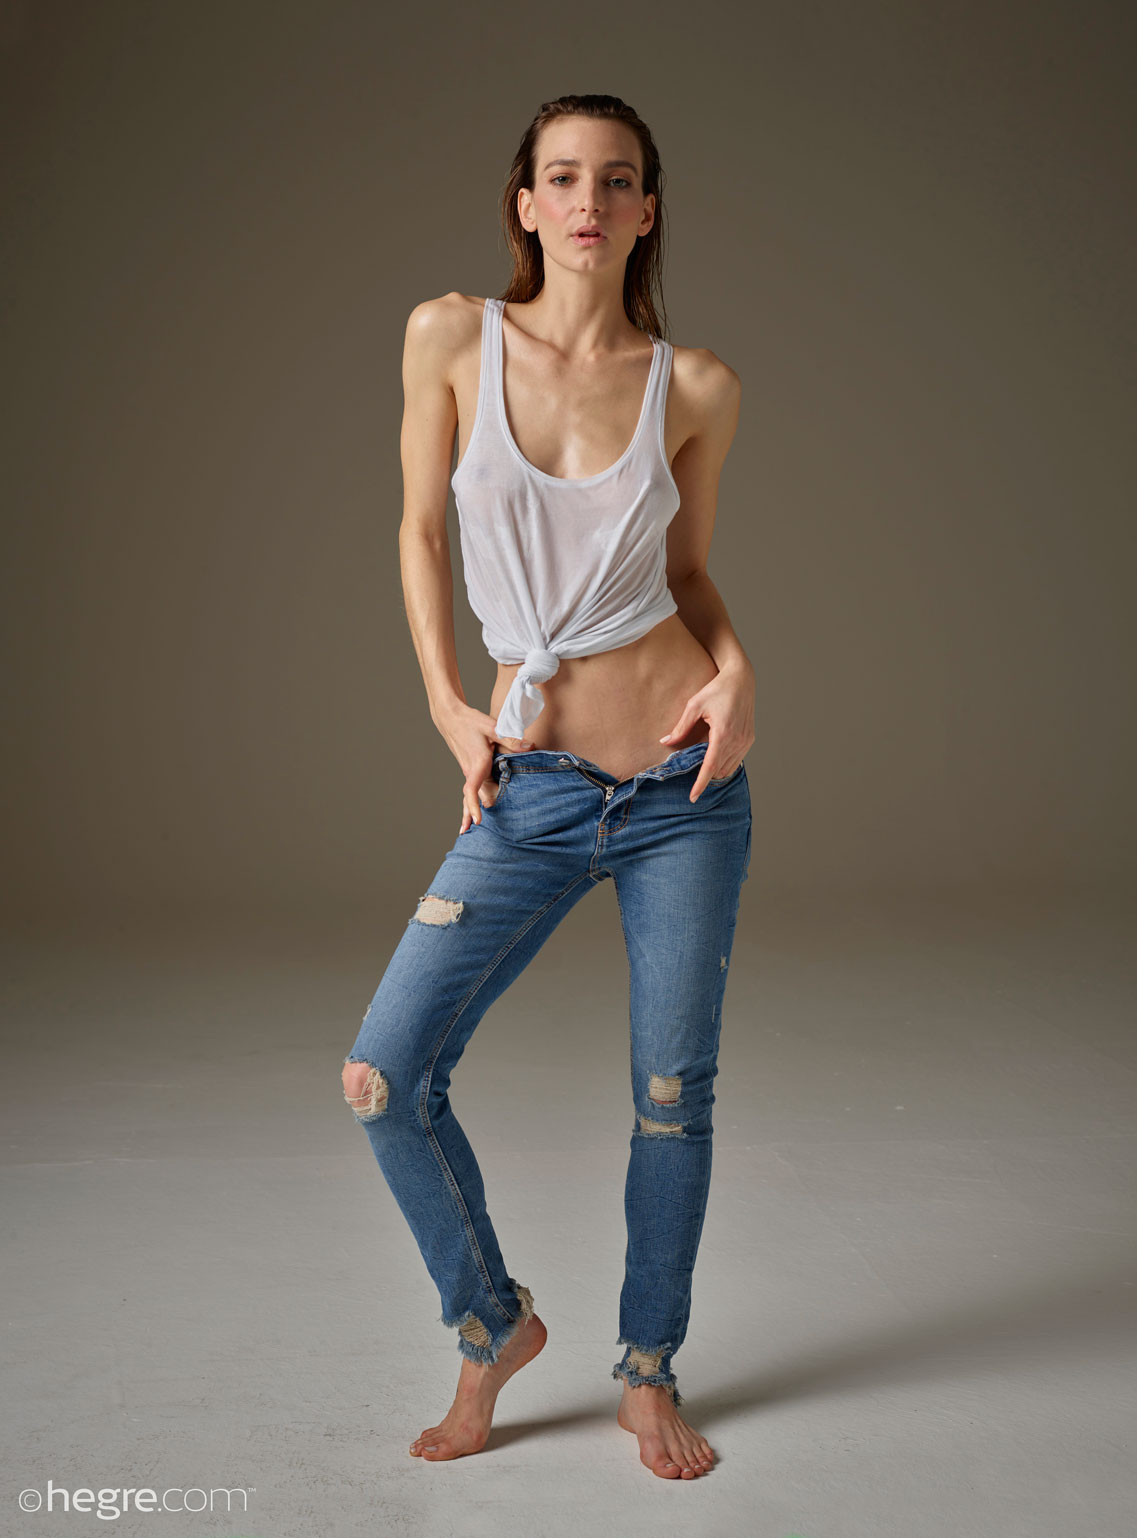 gyrls flora-in-a-sexy-top-and-jeans